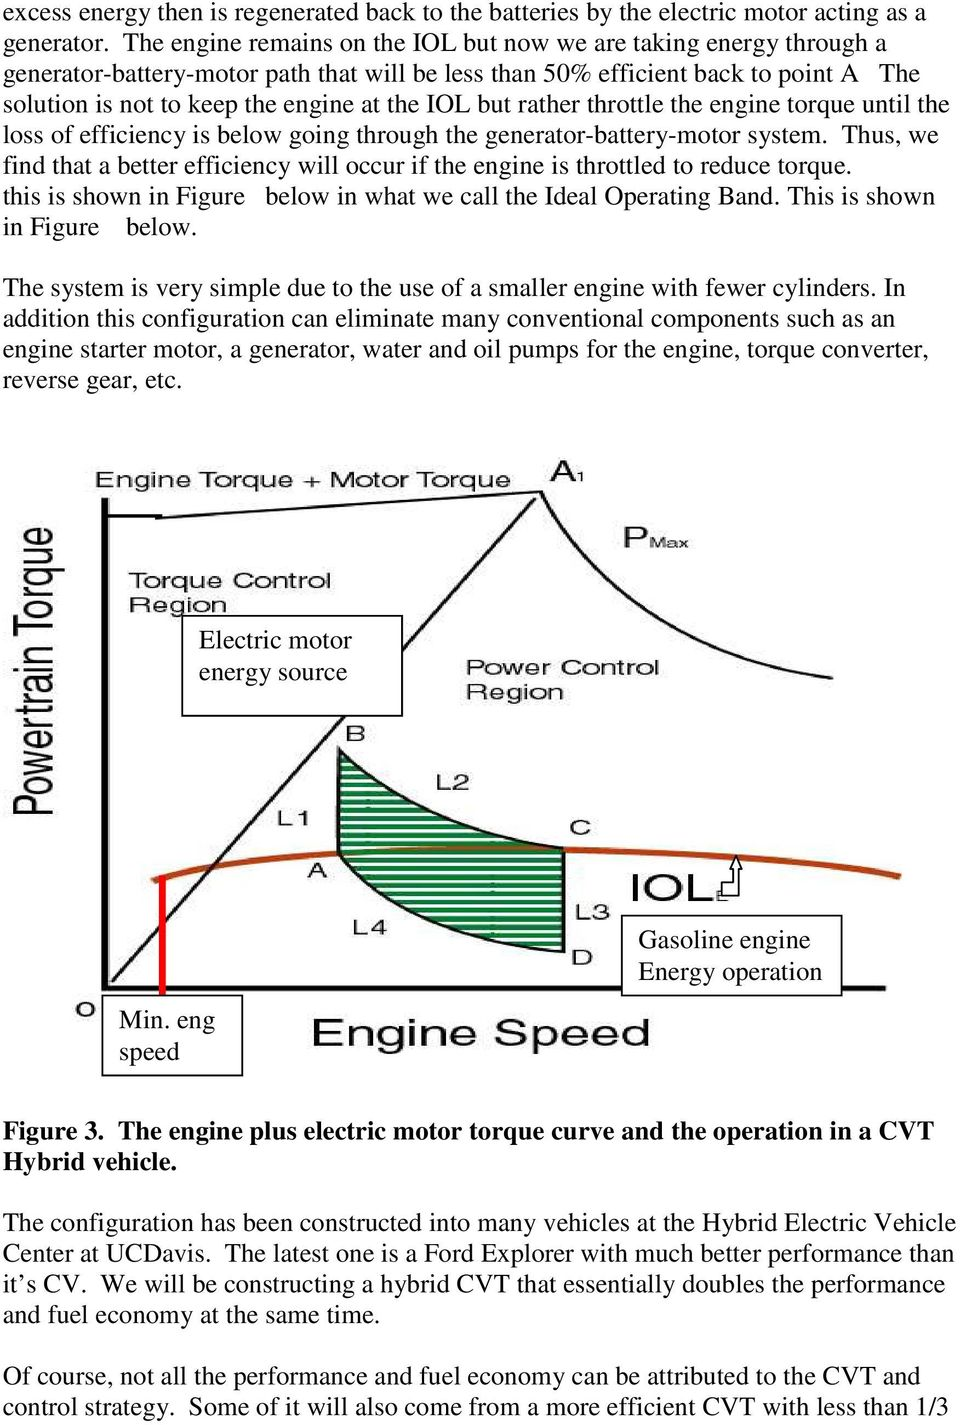 IOL but rather throttle the engine torque until the loss of efficiency is below going through the generator-battery-motor system.